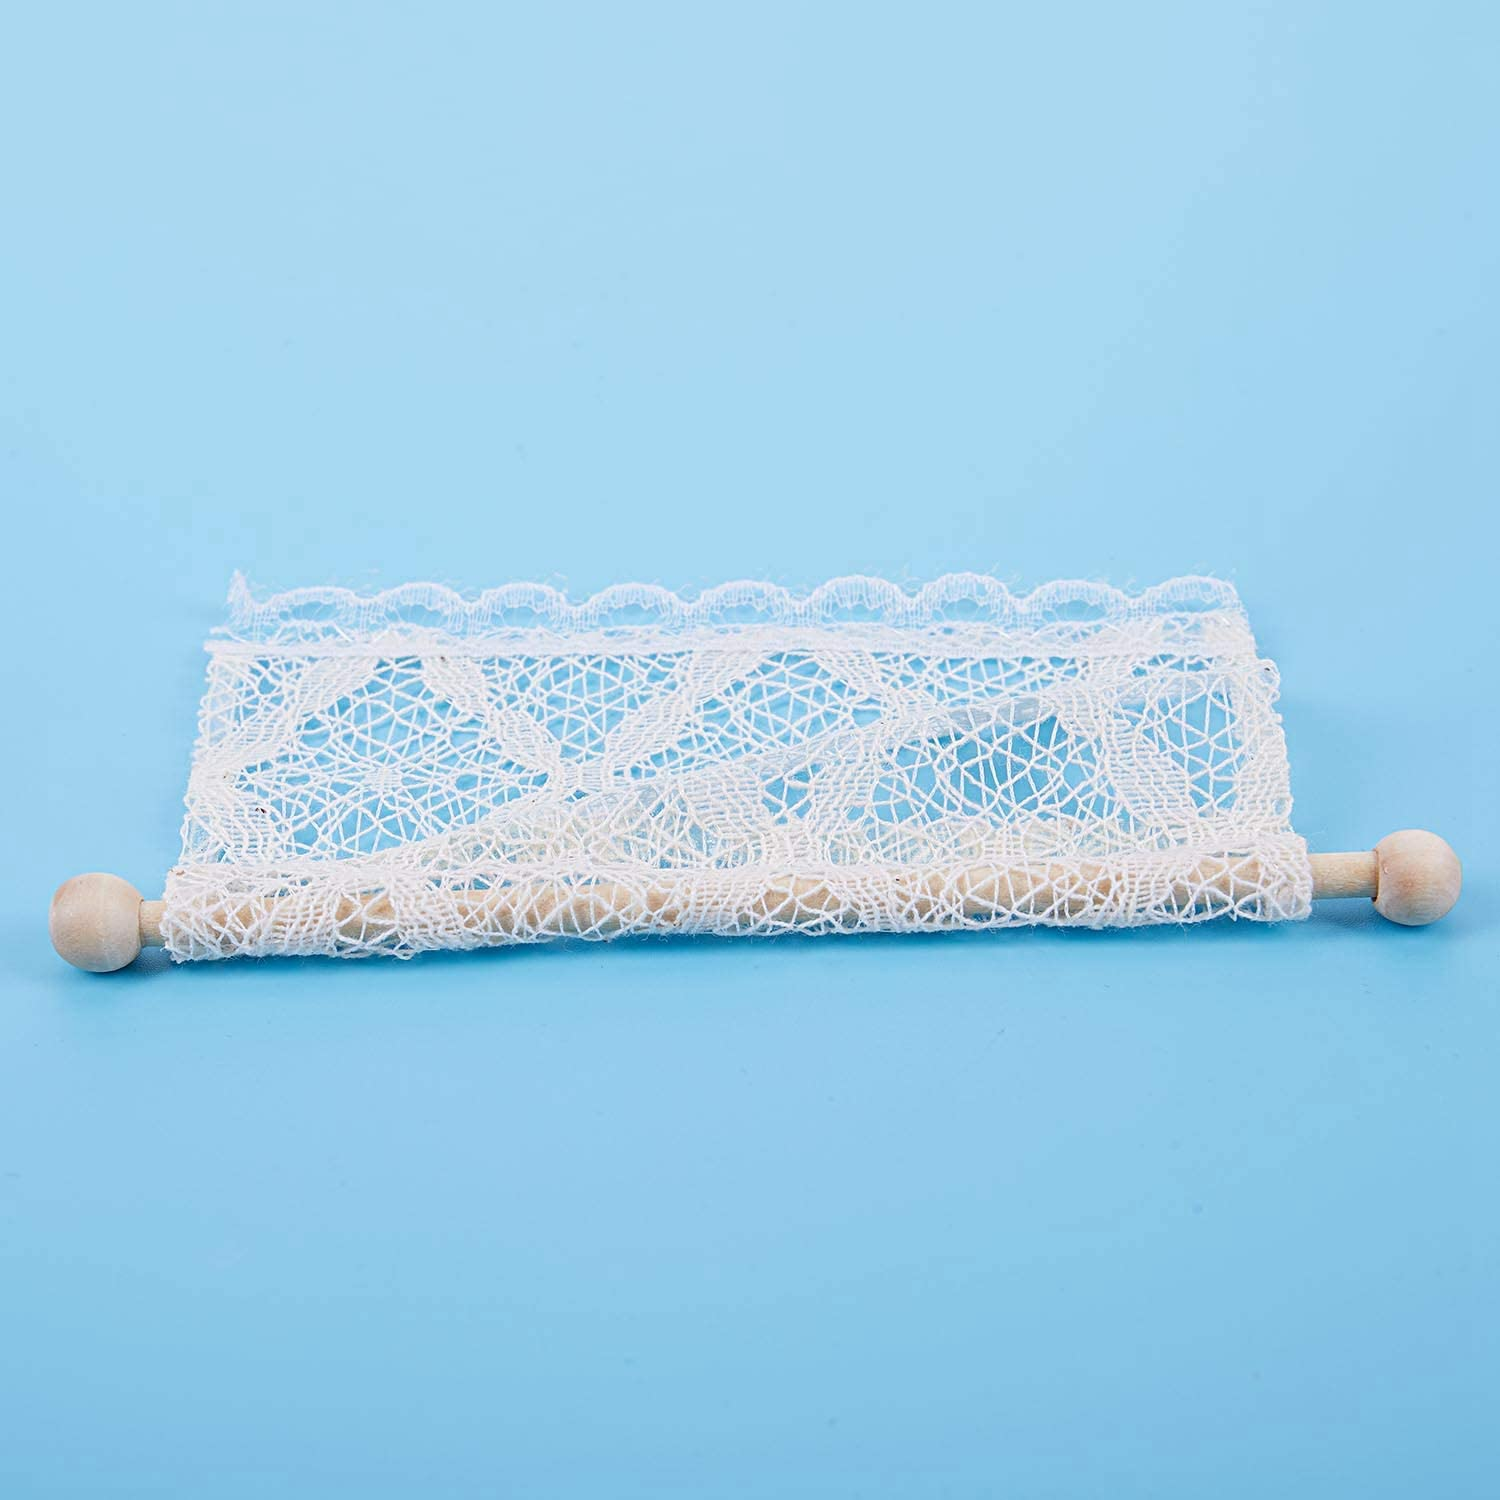 Andifany Dollhouse Curtains Miniature Furniture Accessories Window Valance with Rod 1:12 Scale Beige